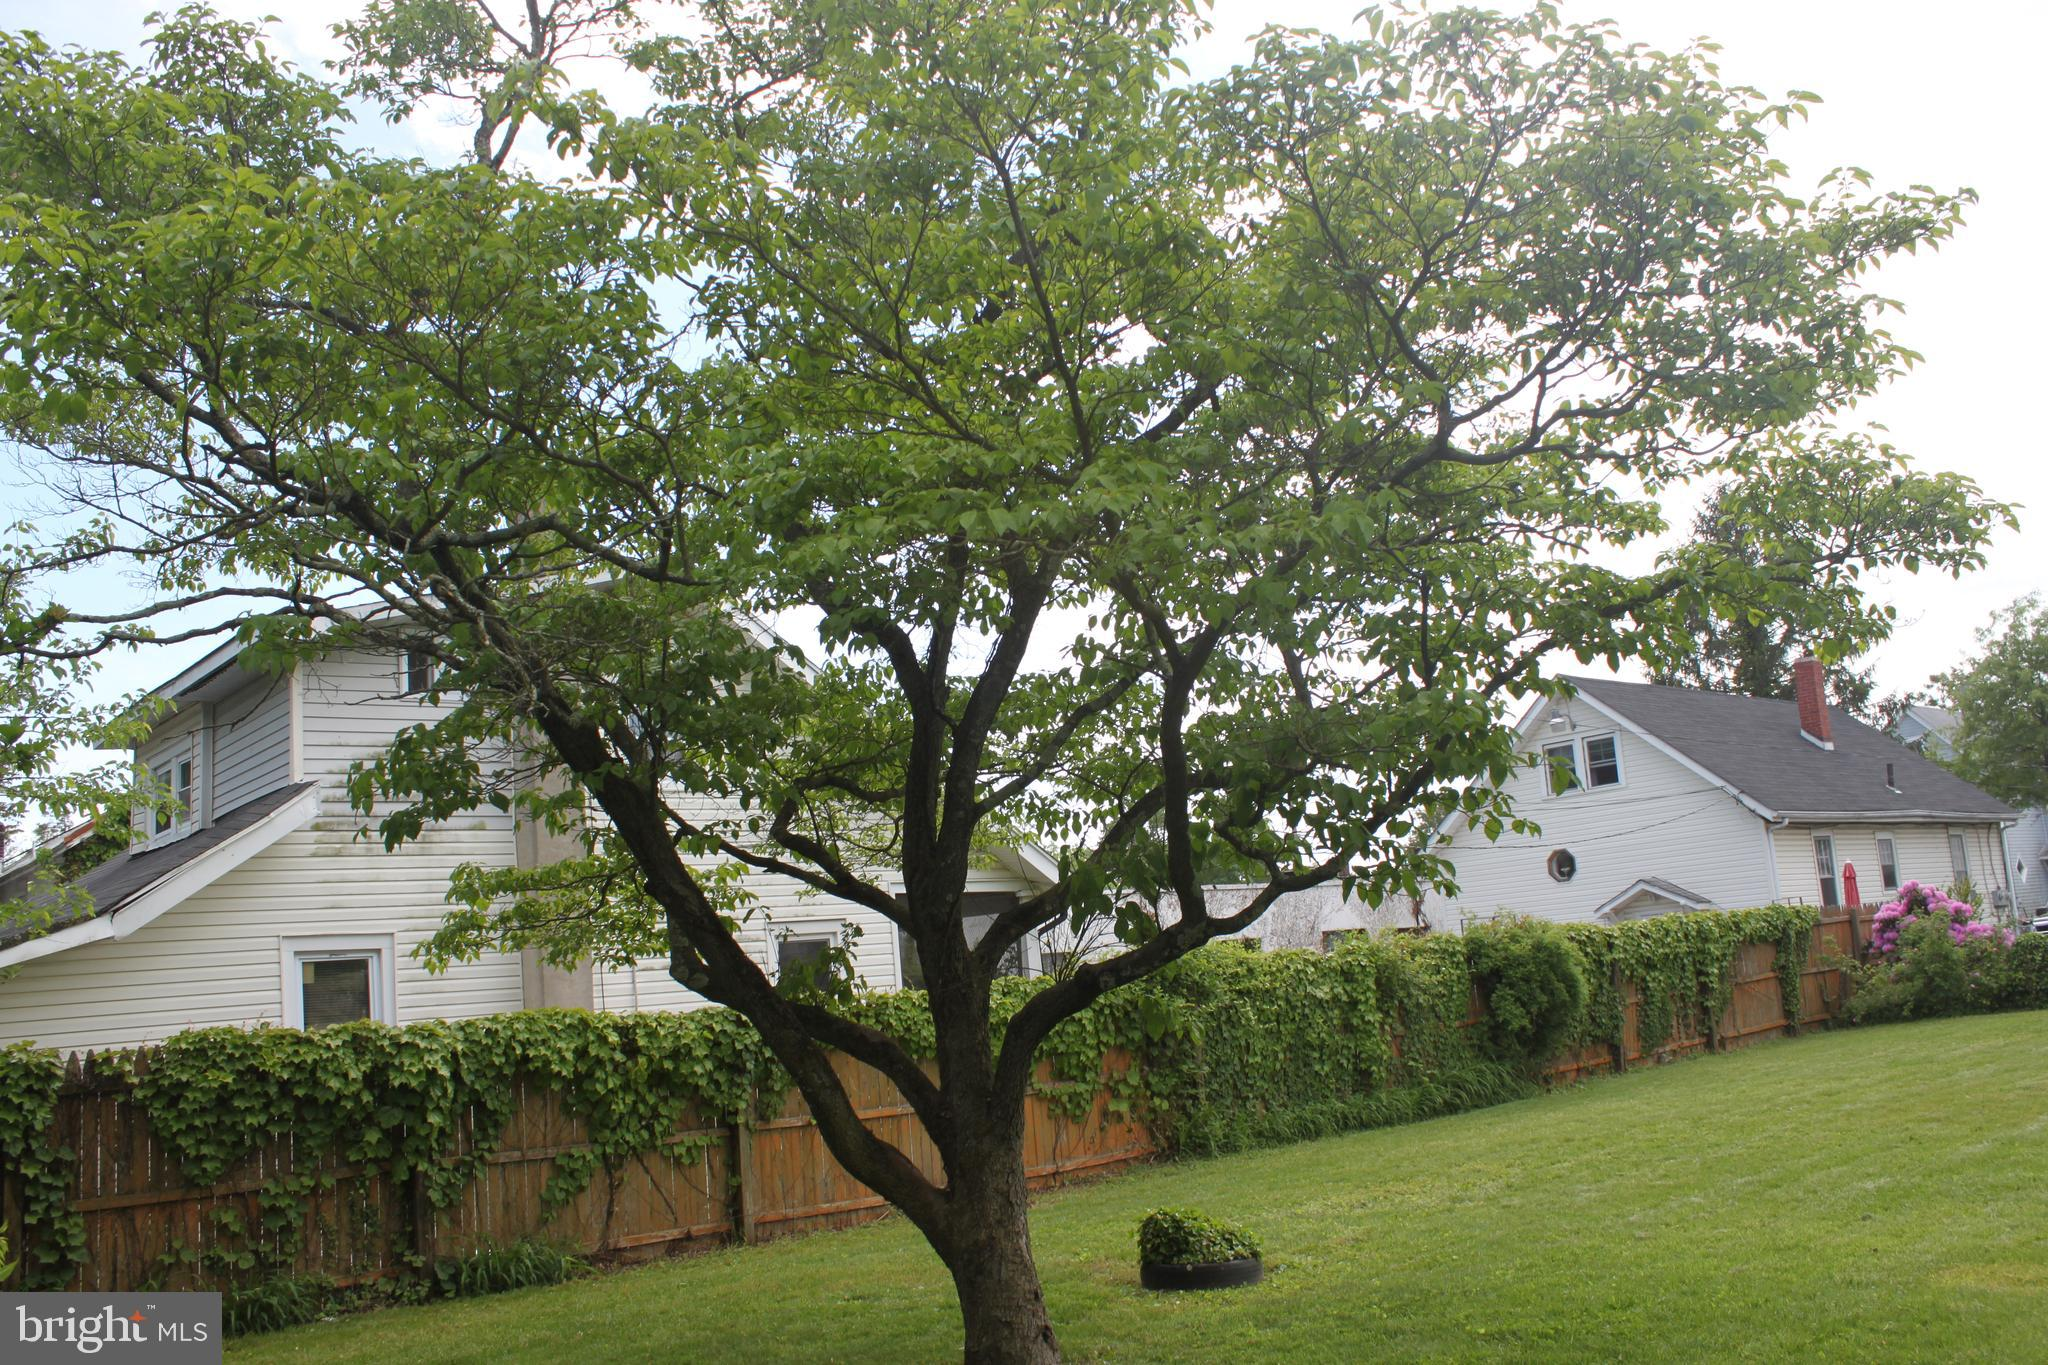 Look at the size of this Dogwood tree